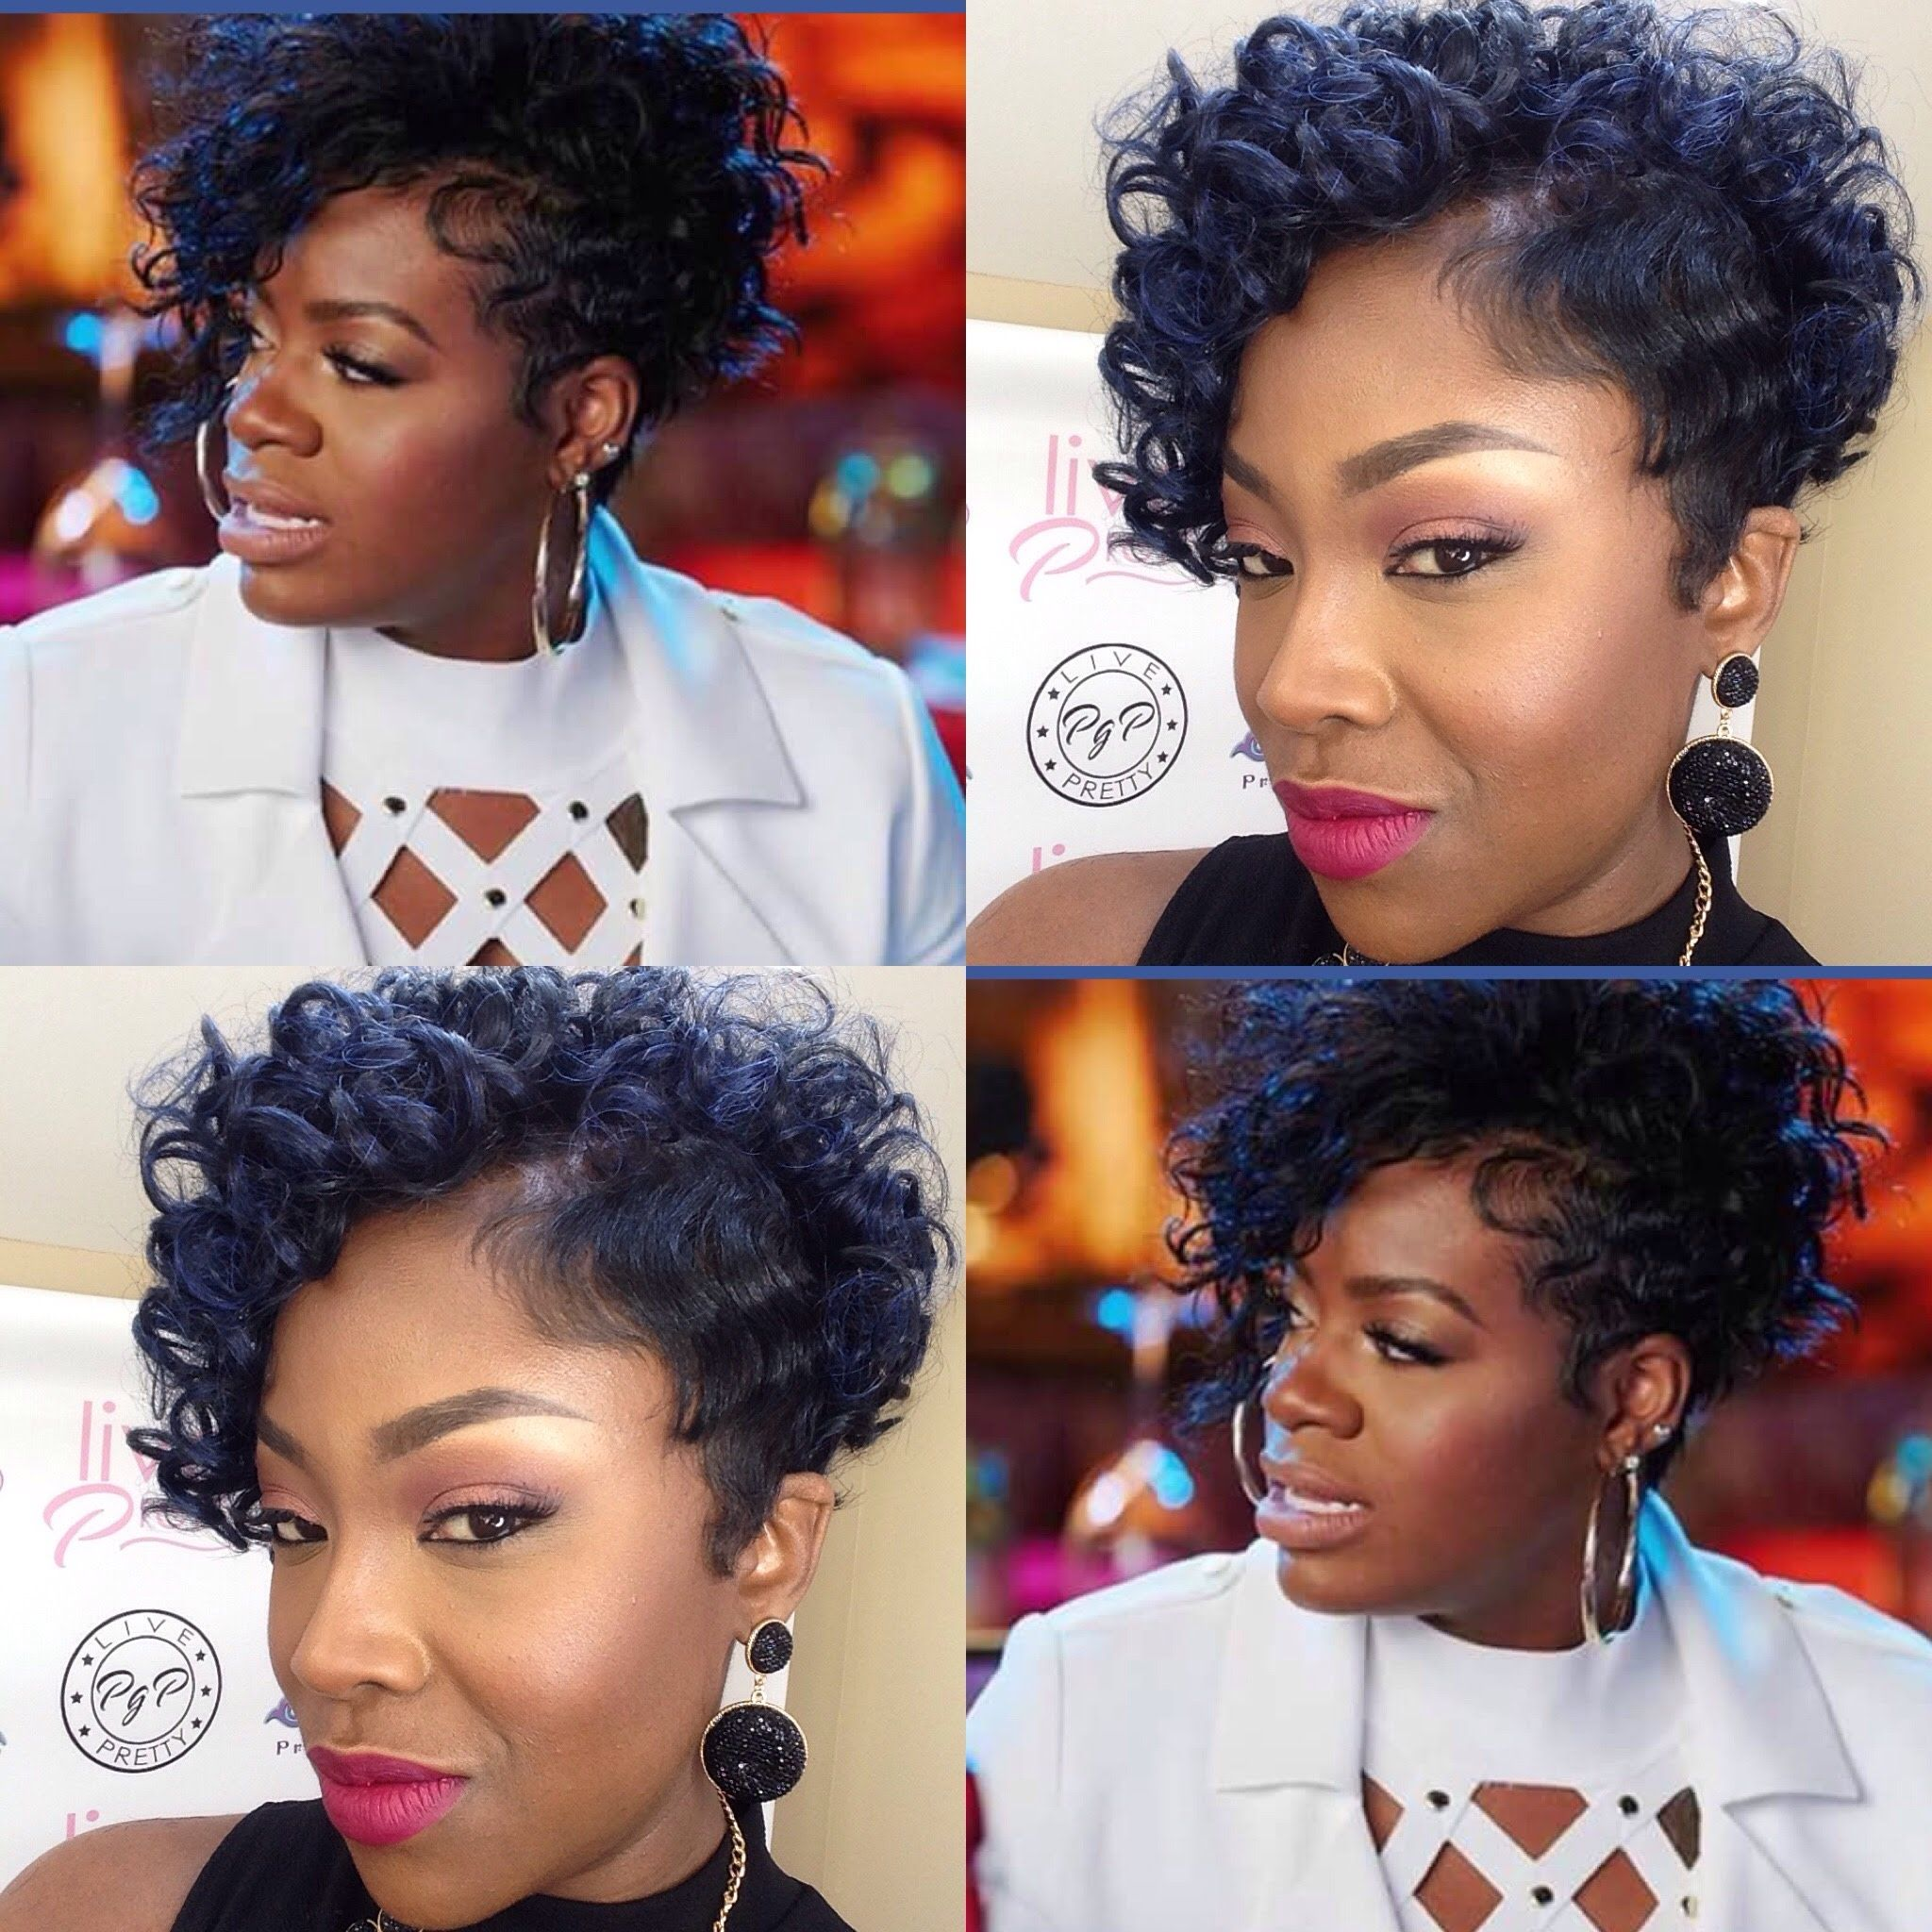 Fantasia Inspired Curly Bob Curly Hair Styles Hair Styles Short Hair Styles